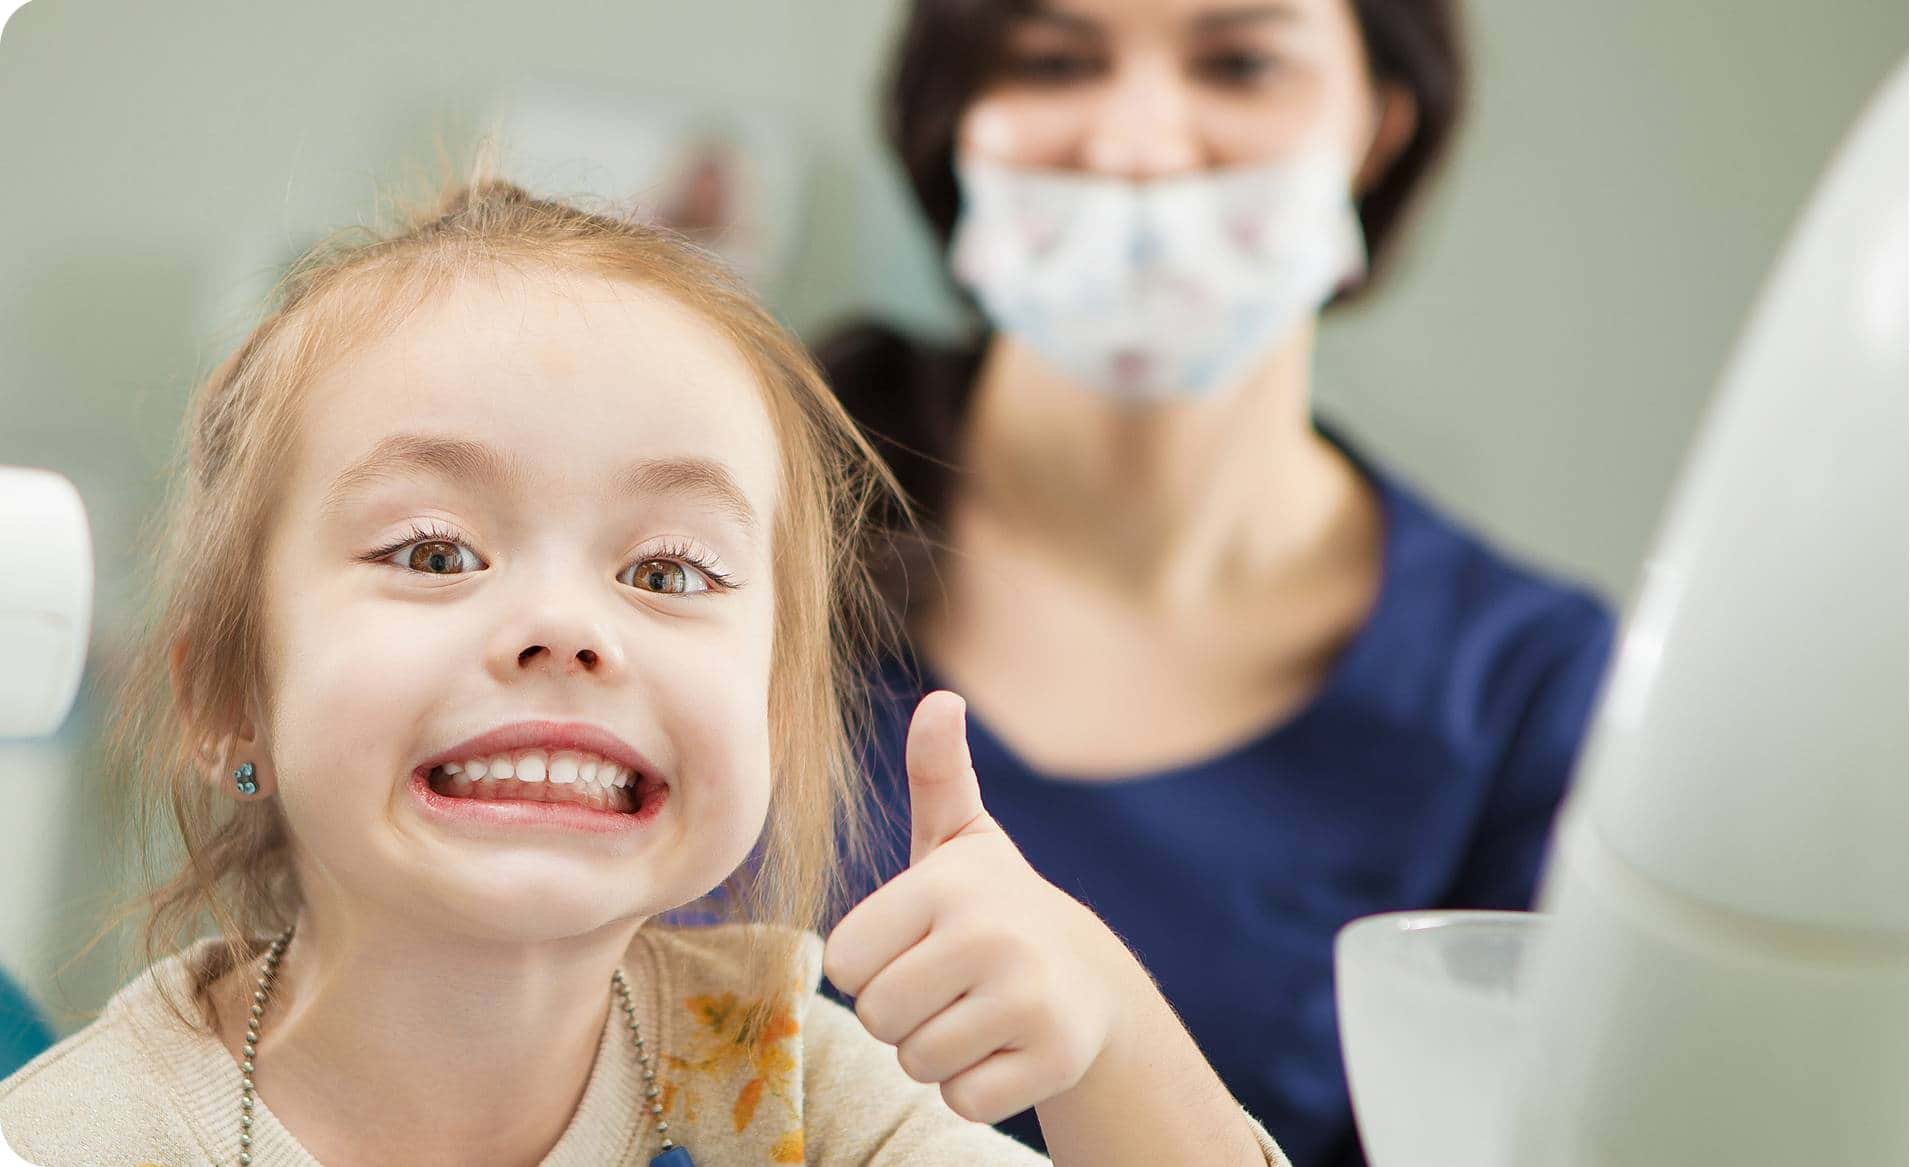 https://www.istockphoto.com/au/photo/cheerful-kid-with-broad-smile-after-teeth-polishing-procedure-gm1091717758-292892315